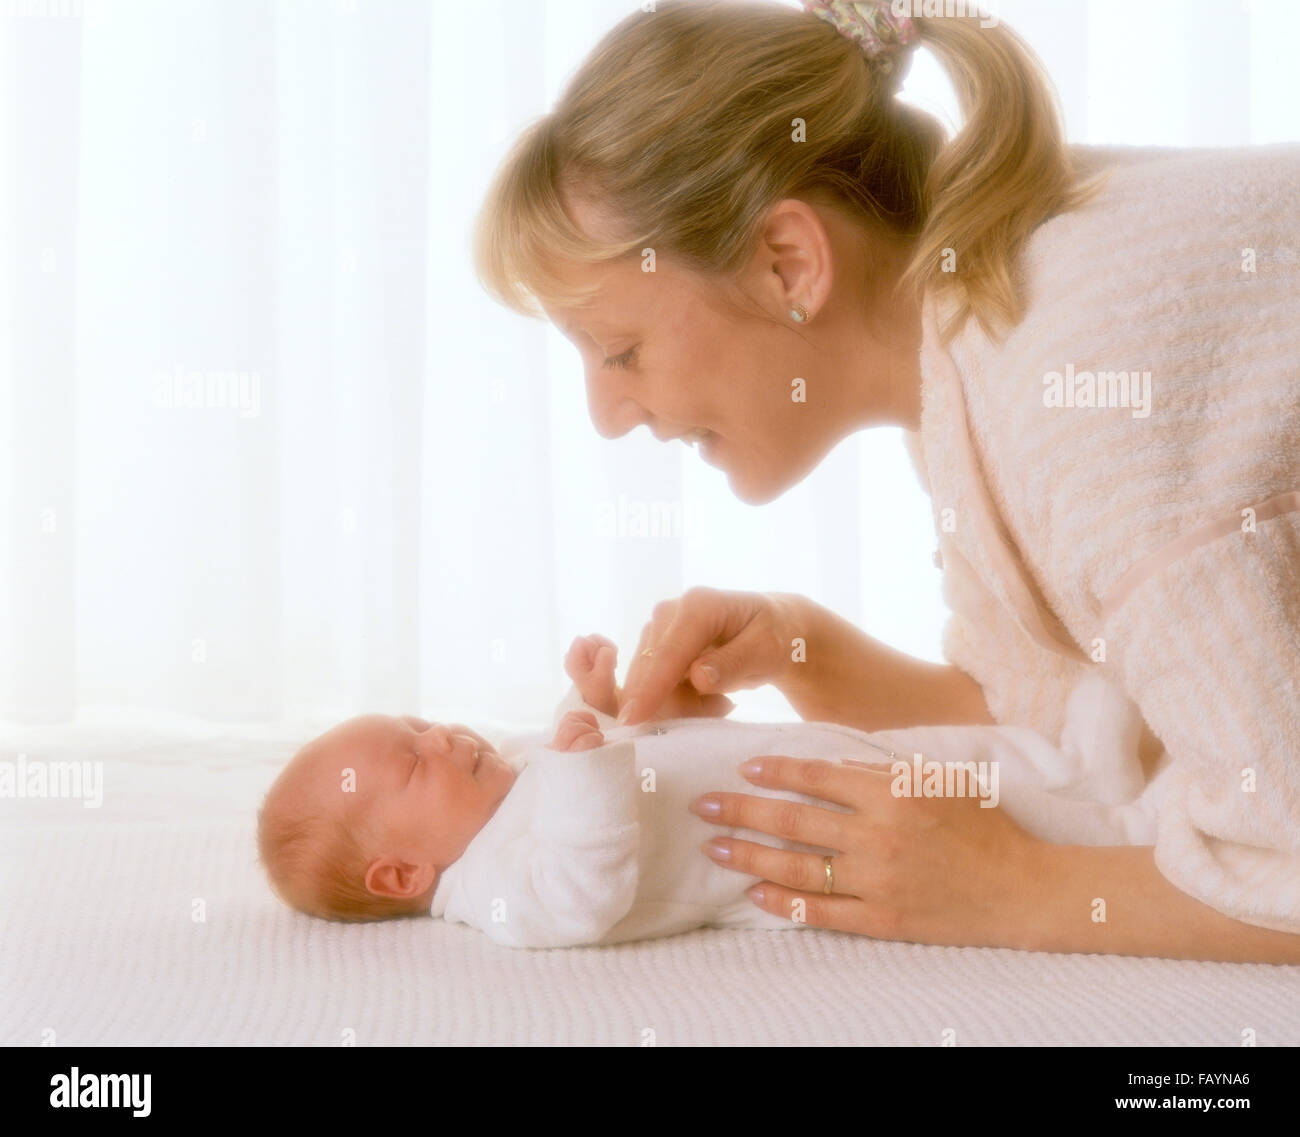 Mother and young baby - Stock Image